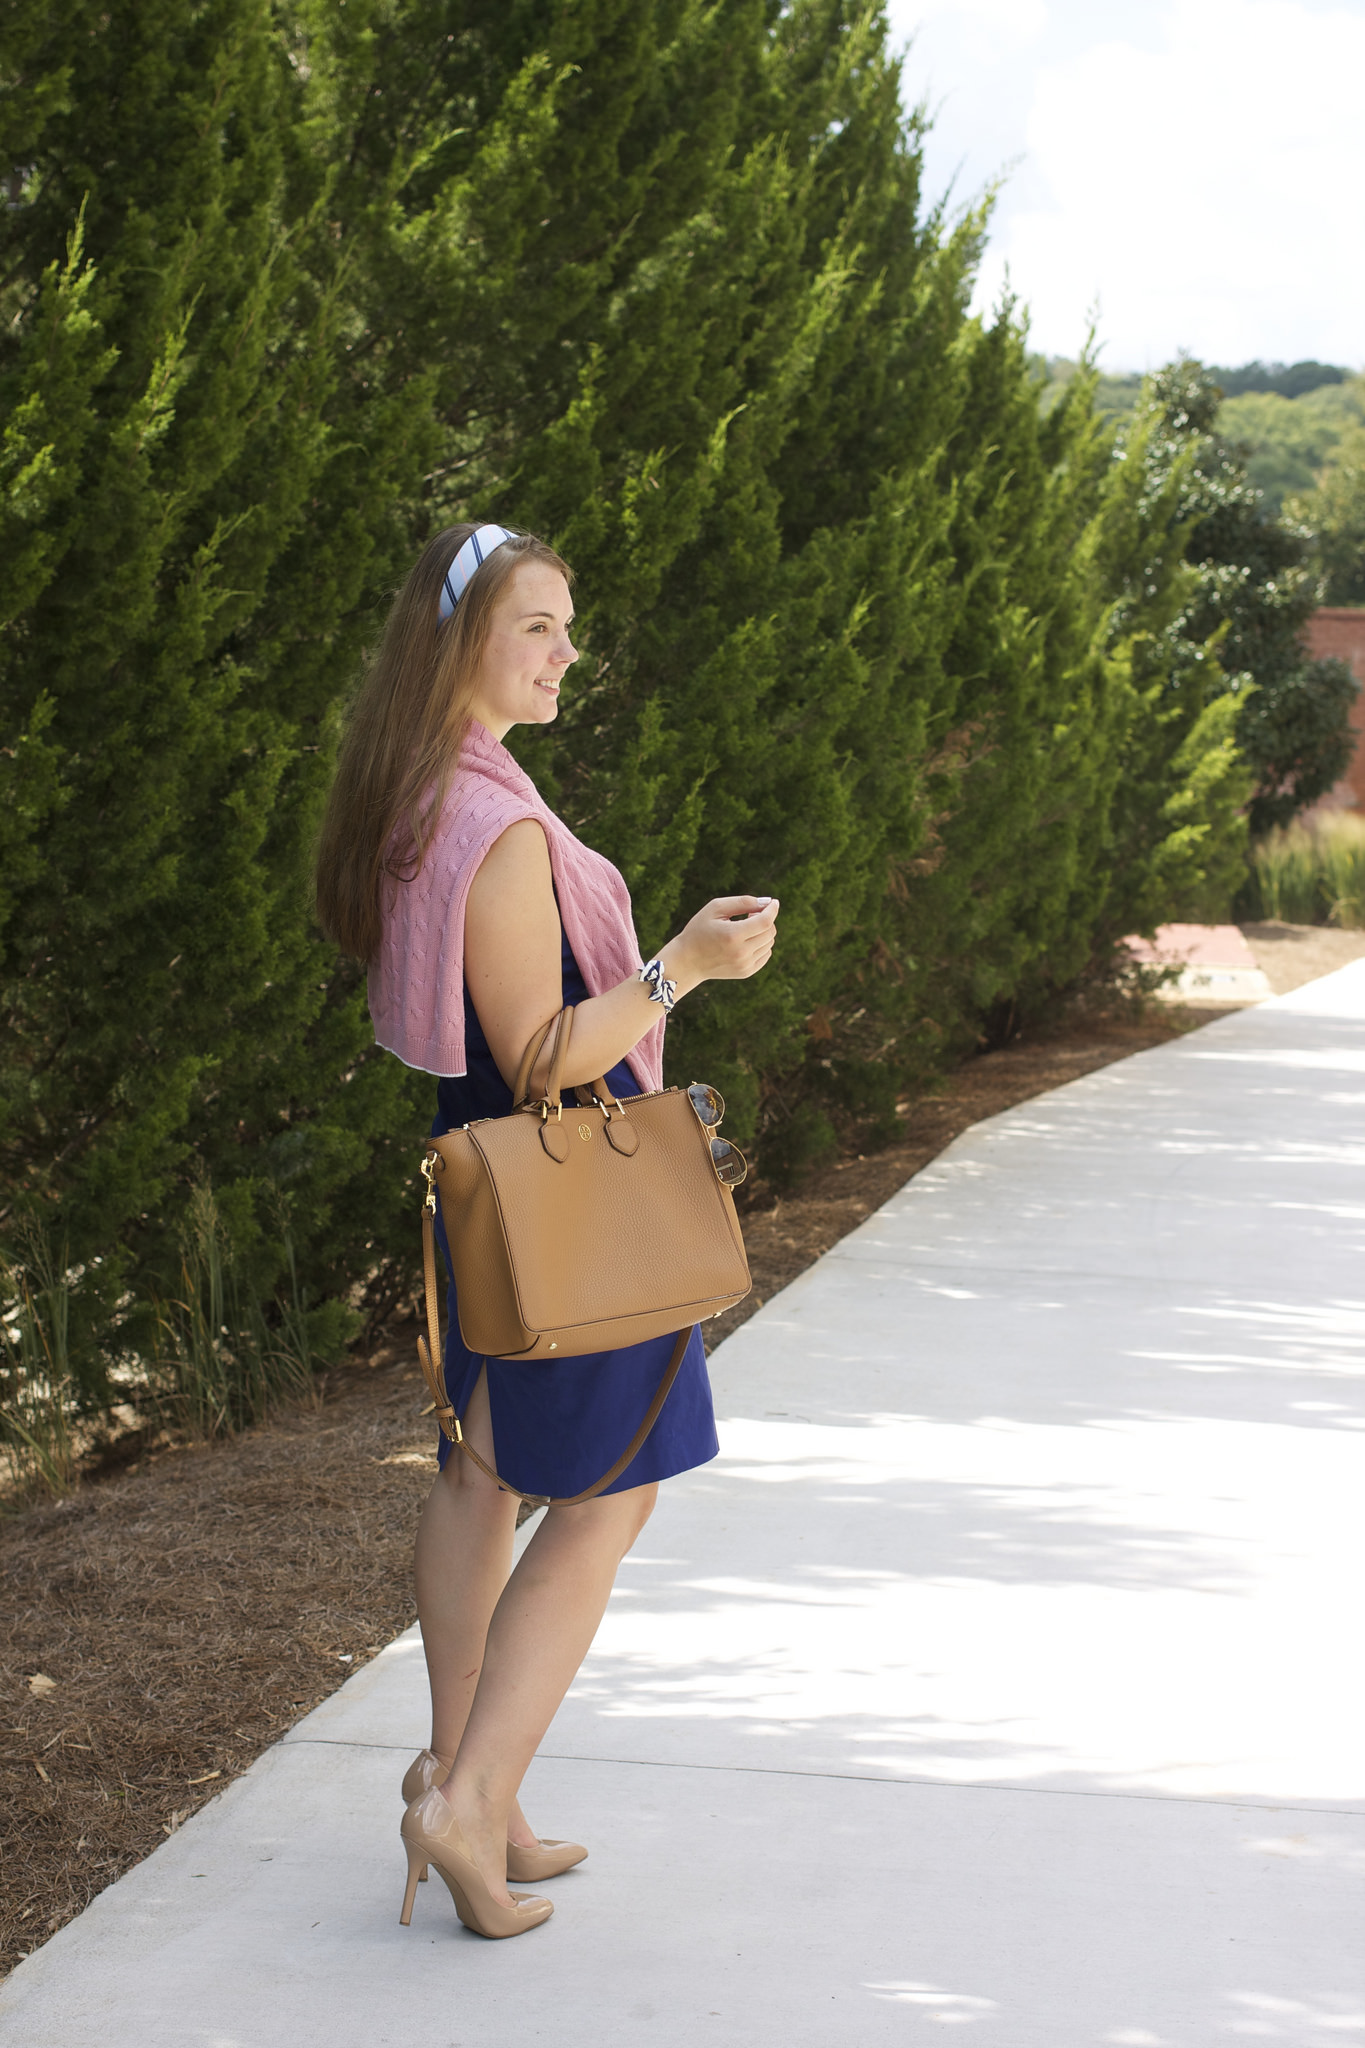 Nicole Stephens | University of Georgia   Nicole is wearing a Brooks Brothers sweater with a Vineyard Vines headband and Tory Burch tote. The pearl stud earrings and necklace are, of course, gifts and family heirlooms, as they should be.